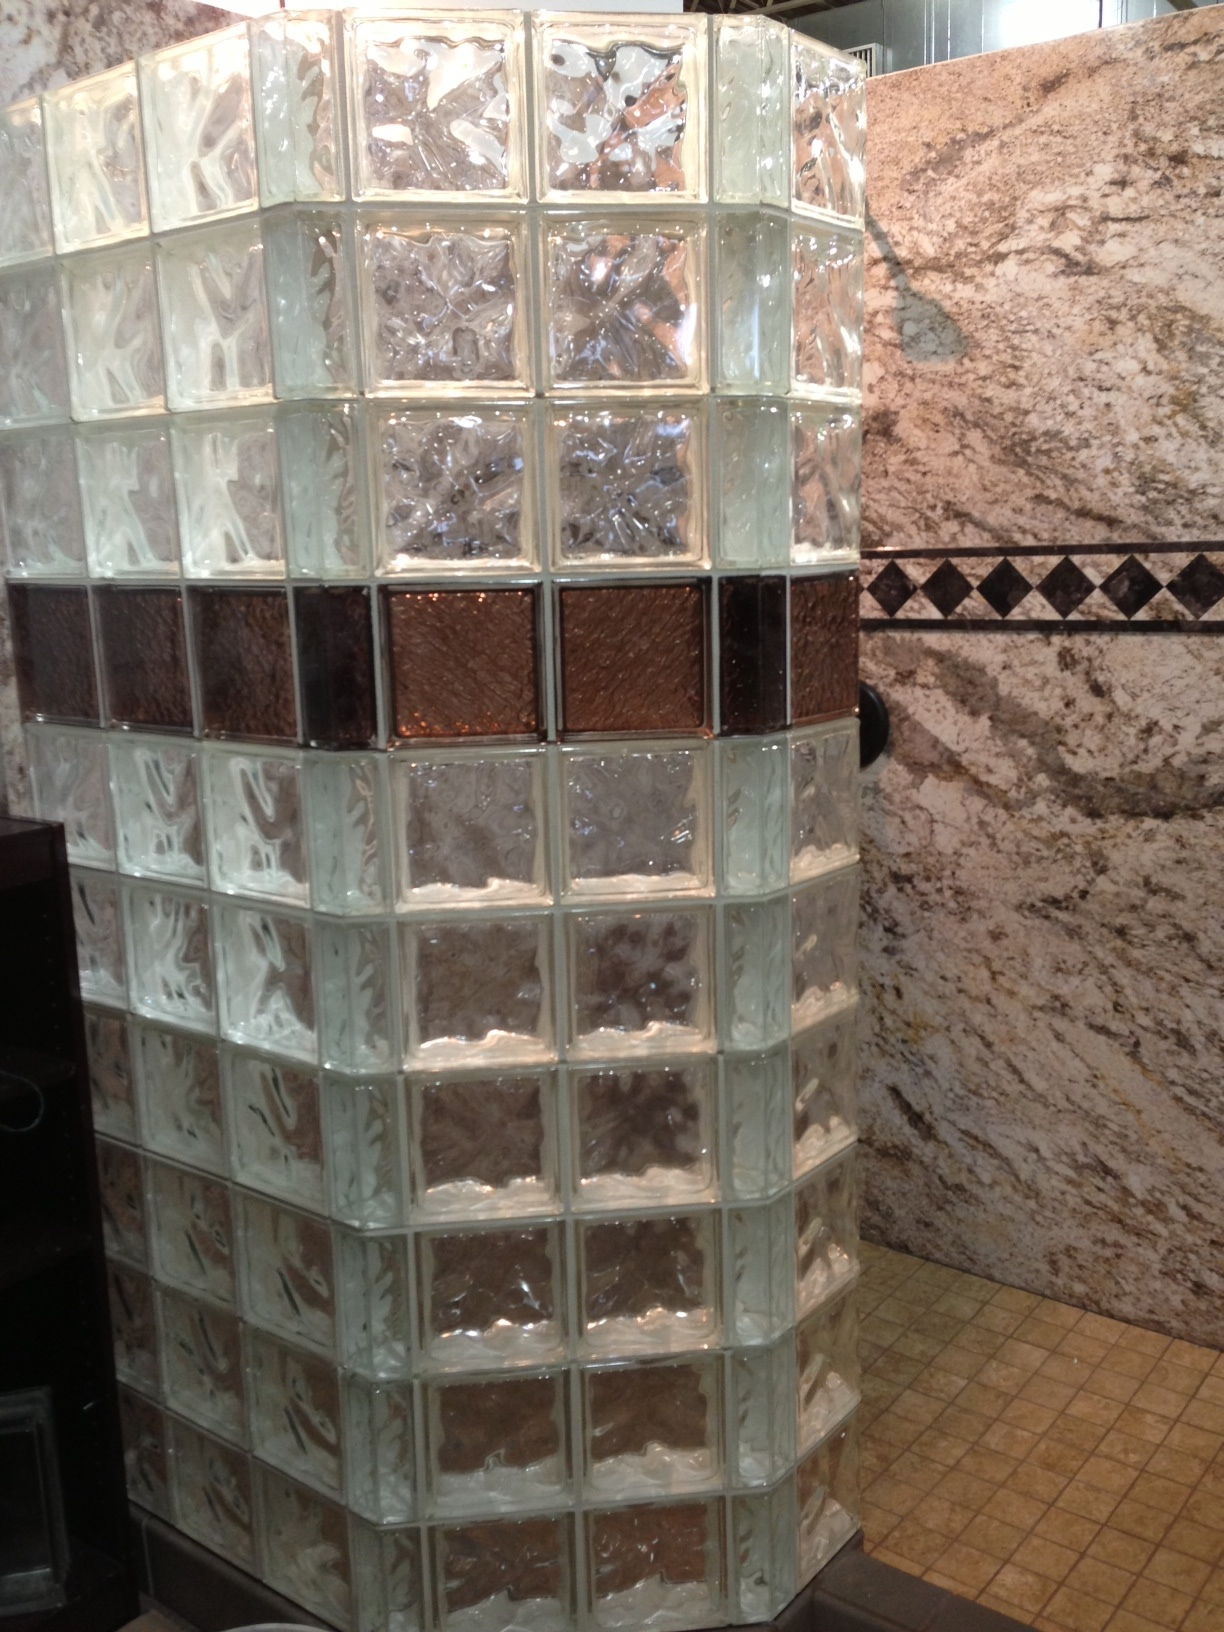 Decorative Colored Glass Block Shower With Decora And Icescapes Patterns At  Central Ohio Home And Garden Show